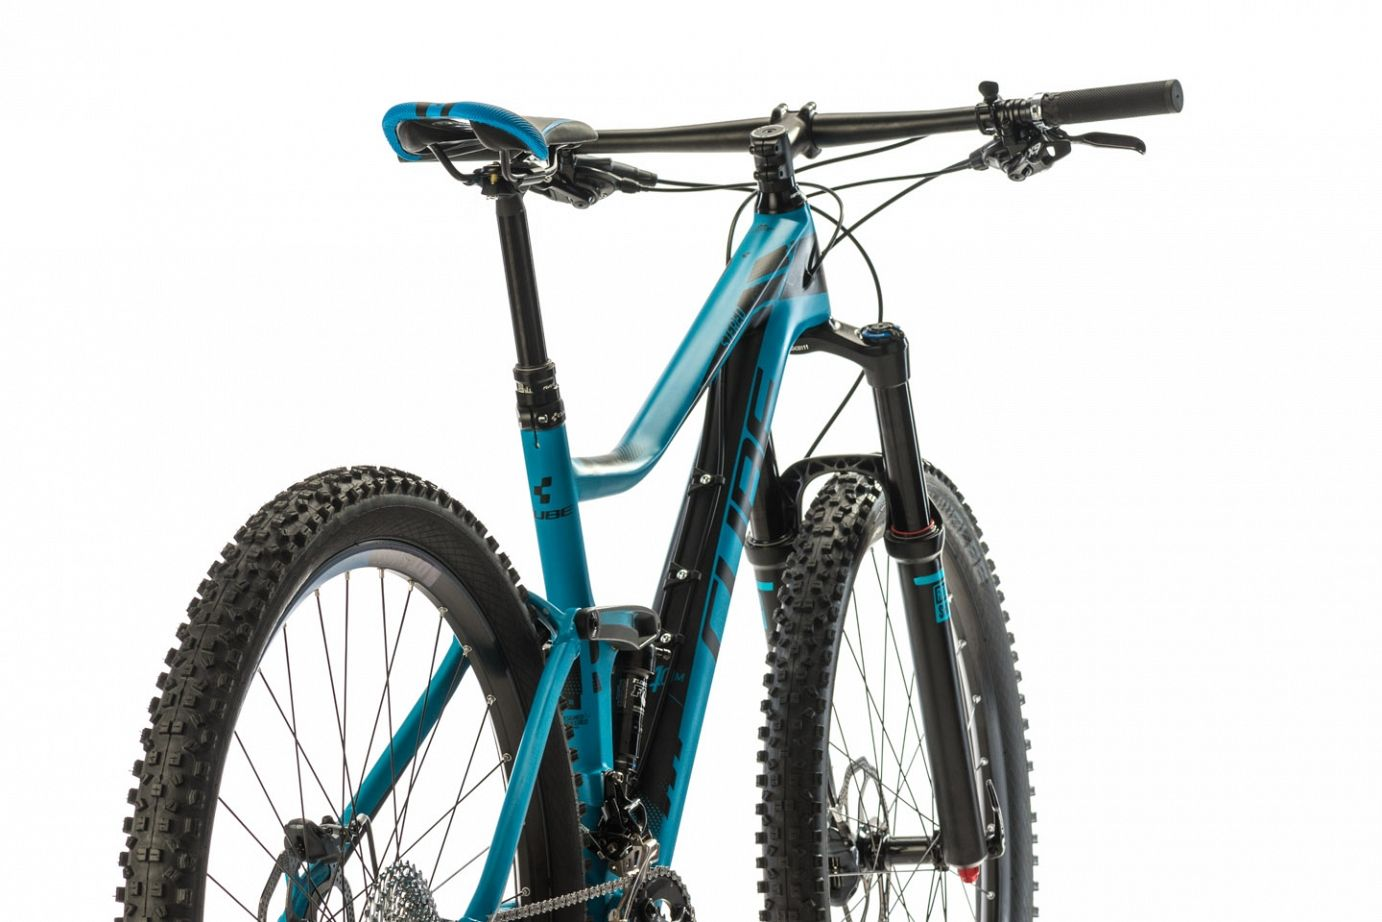 Cube Stereo 140 Hpc Race 29 2014 Review The Bike List